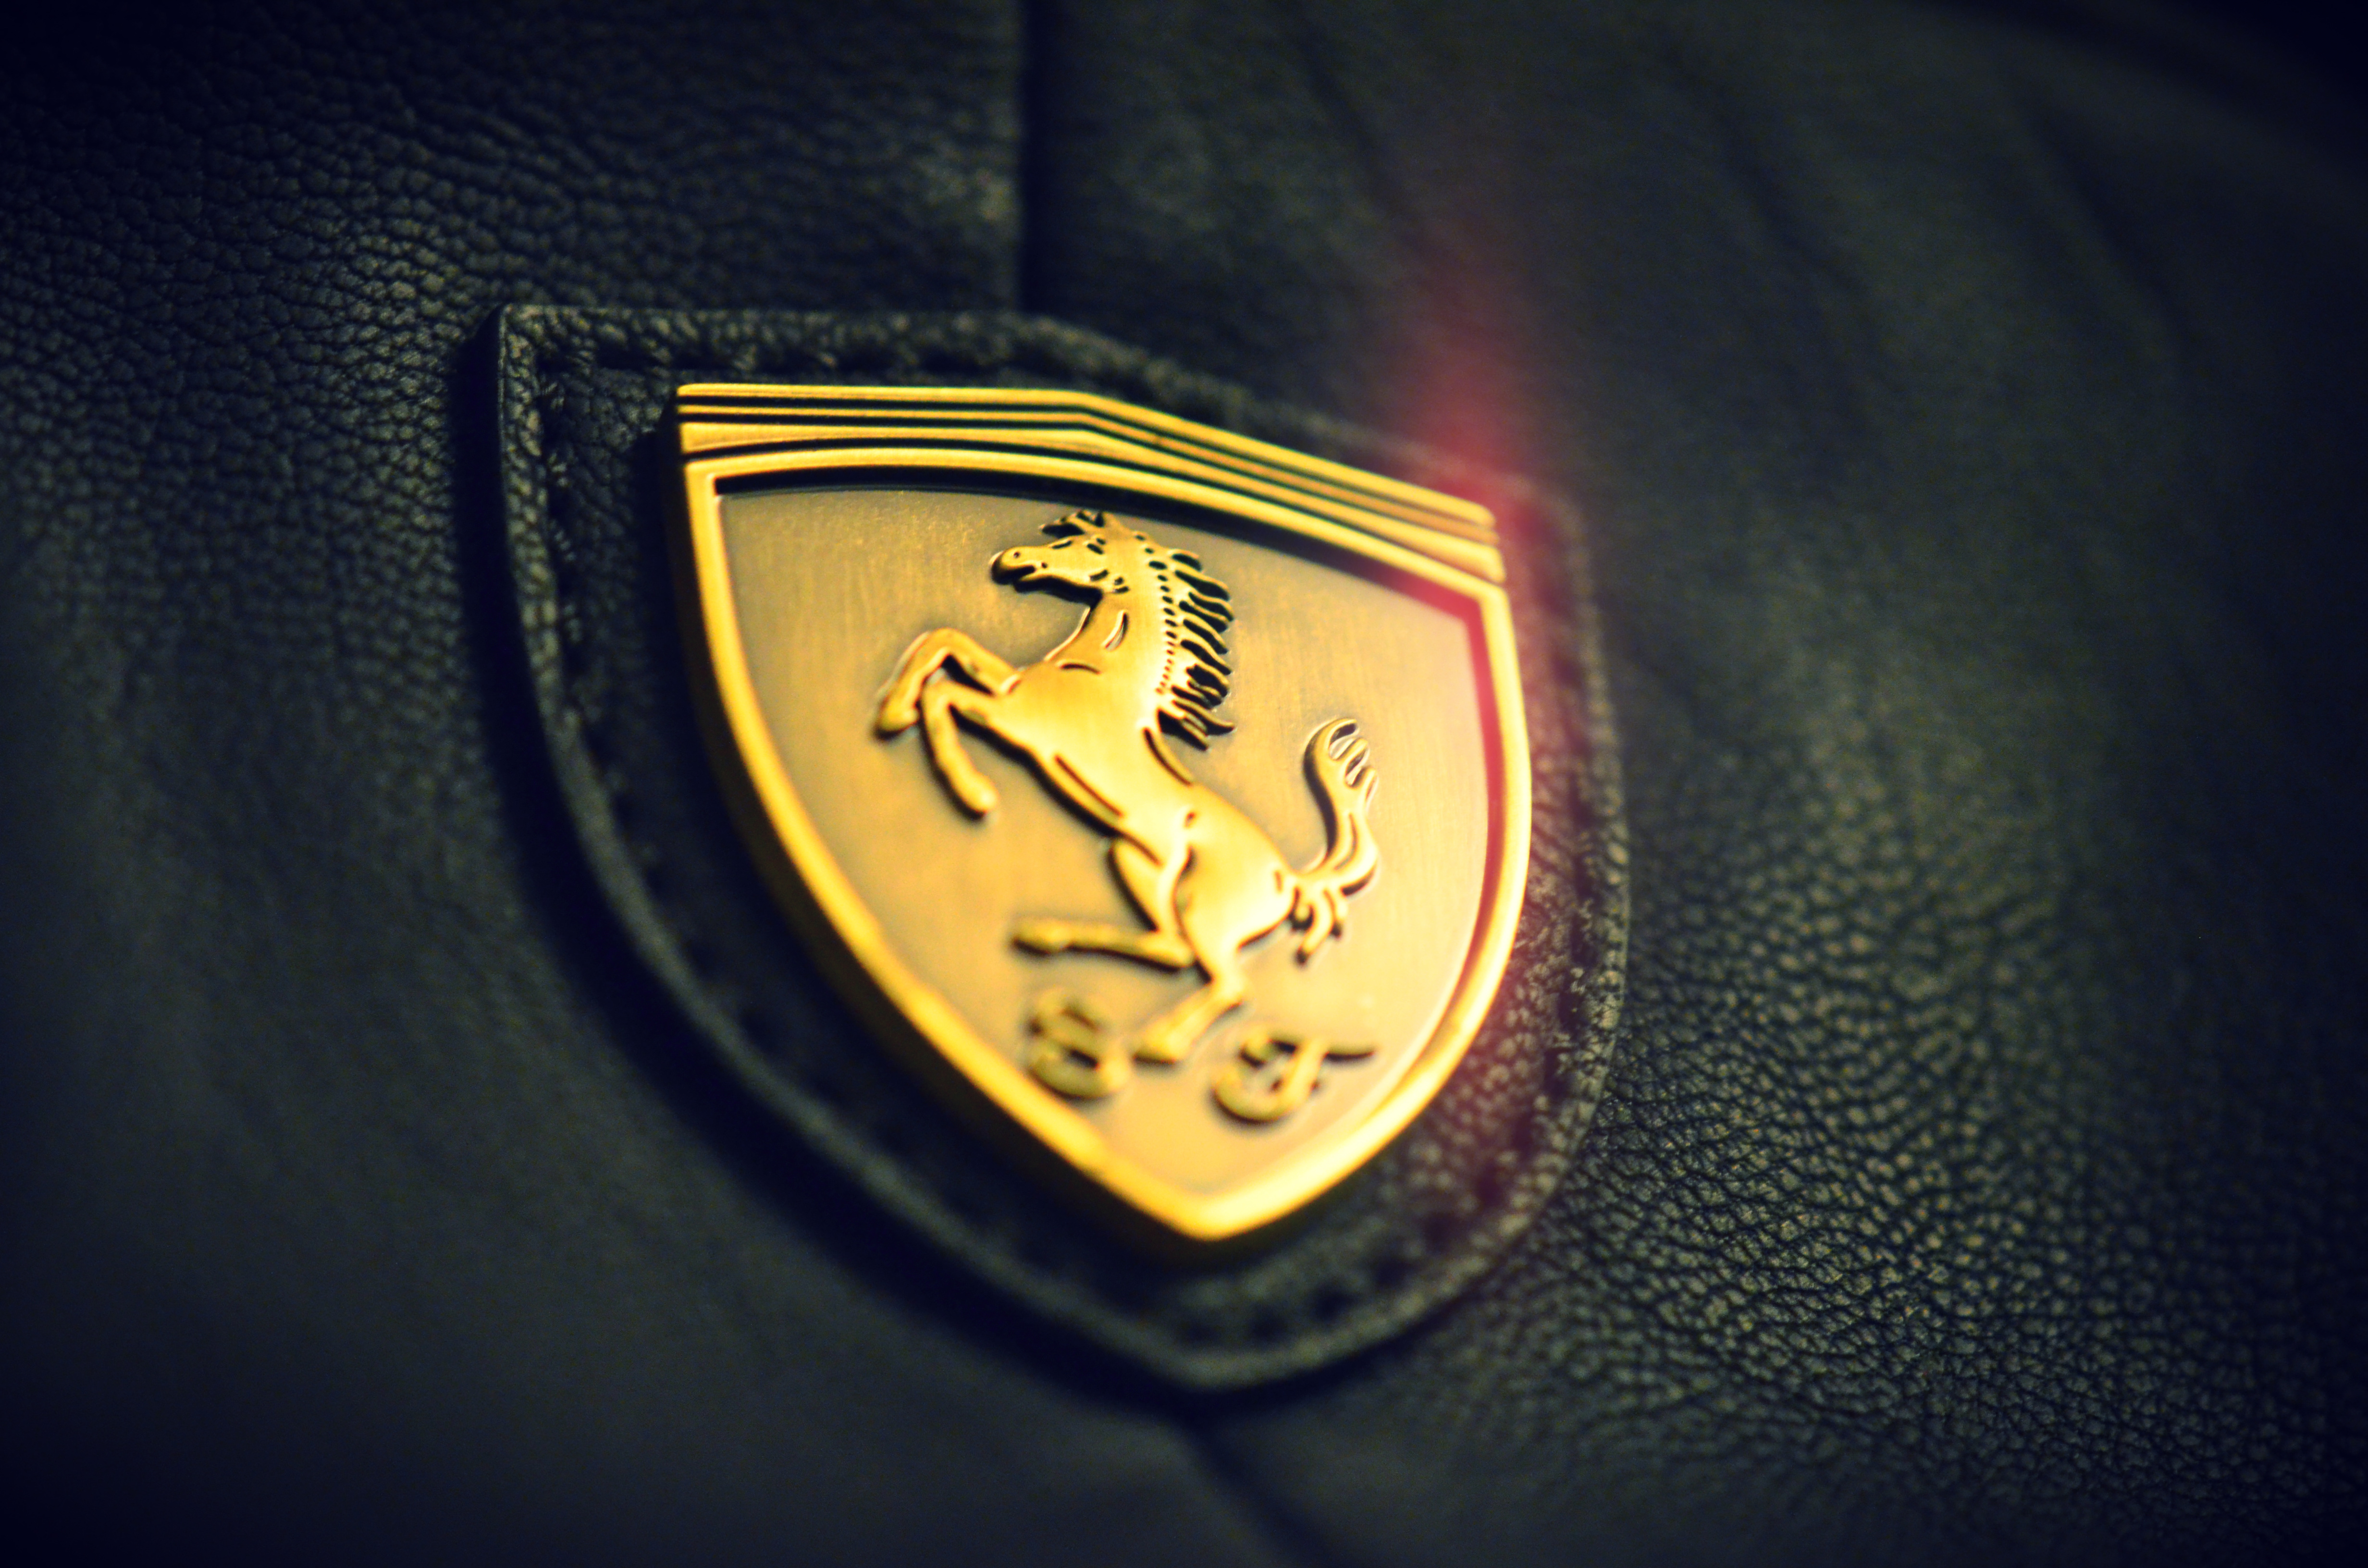 20477 download wallpaper Transport, Auto, Brands, Background, Logos, Ferrari screensavers and pictures for free